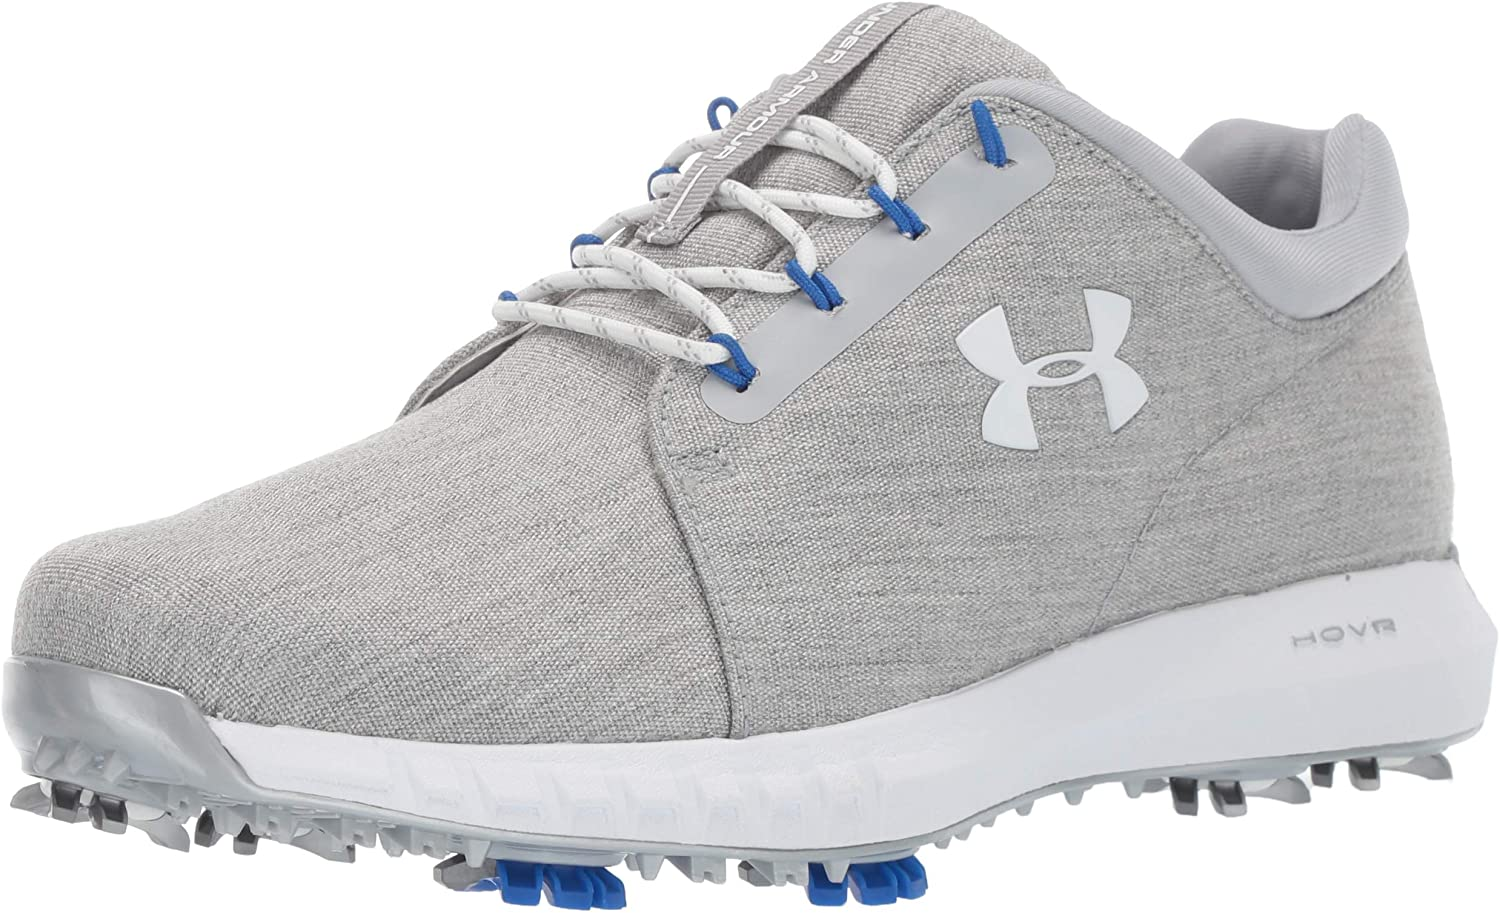 Under Armour Women s HOVR Drive Golf Shoe